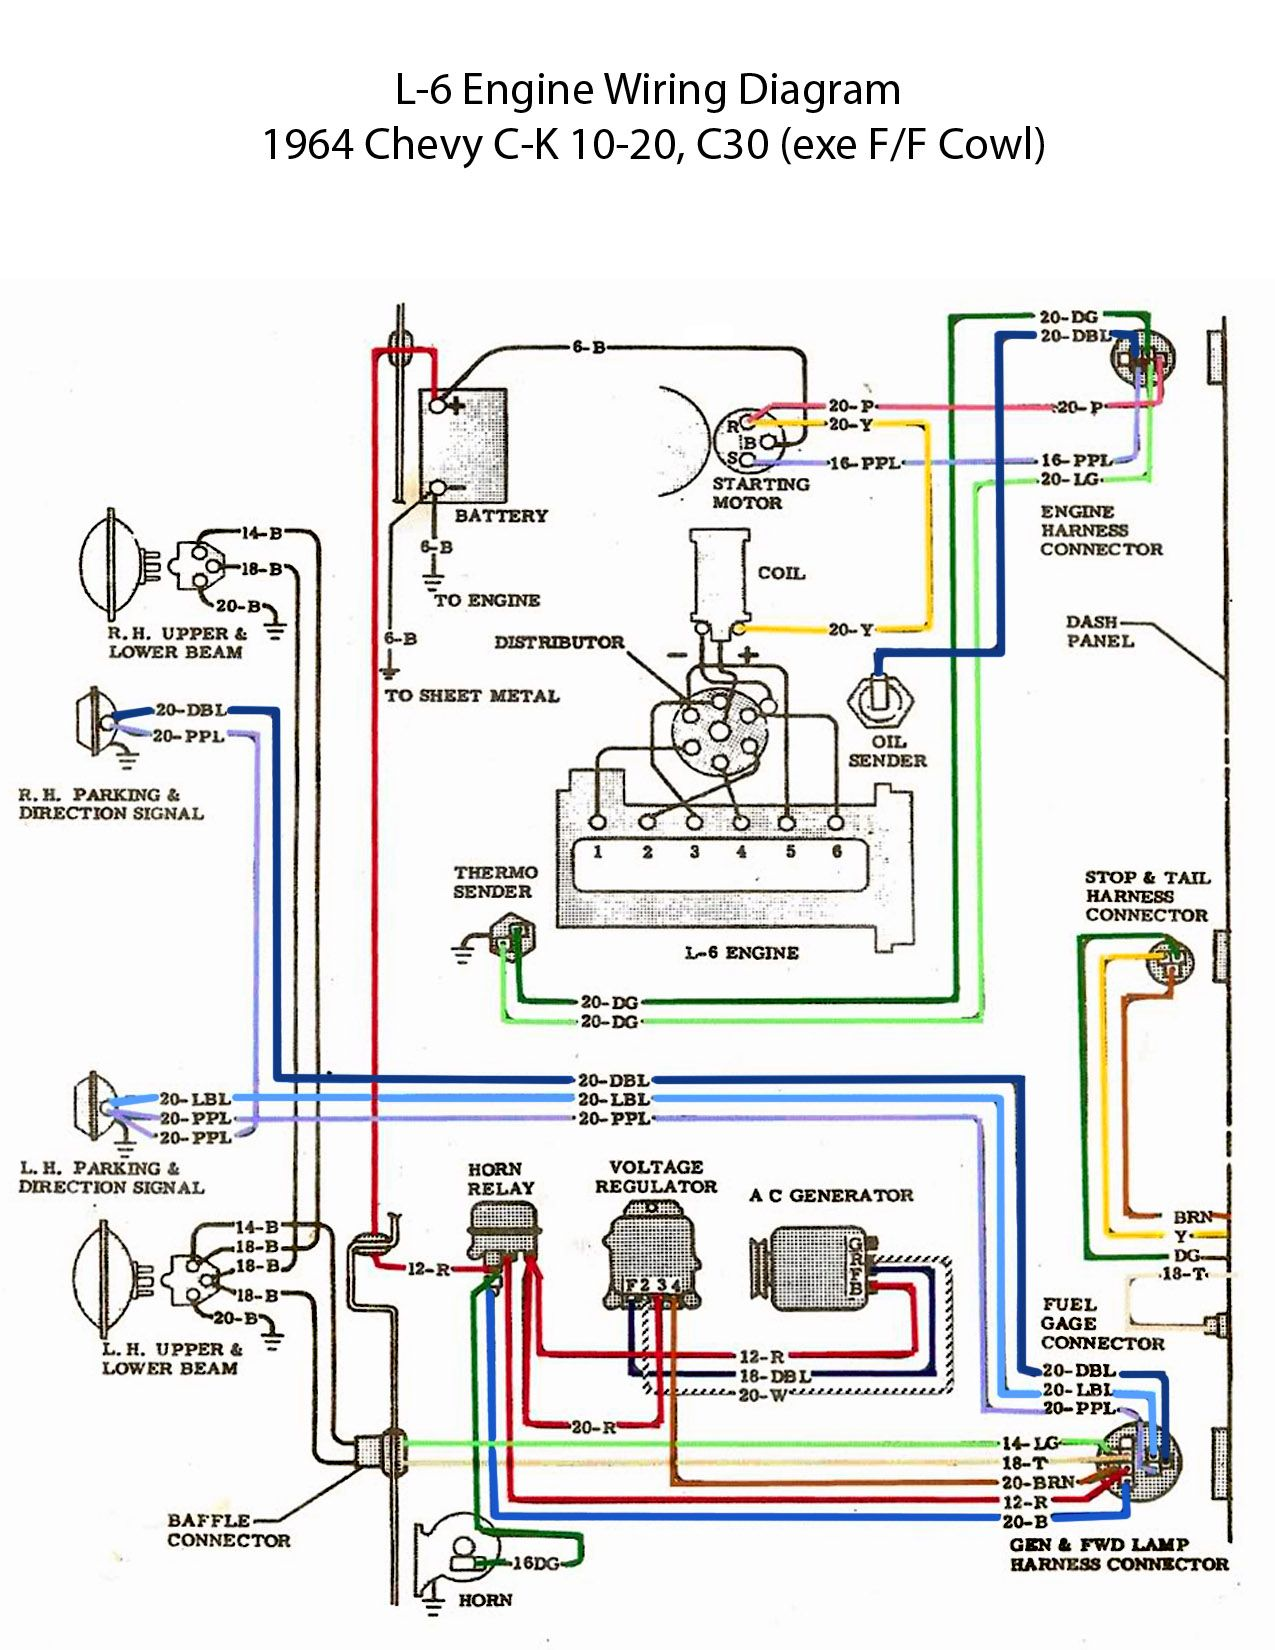 electric l 6 engine wiring diagram 2000 chevy silverado 1965 chevy c10  [ 1275 x 1650 Pixel ]